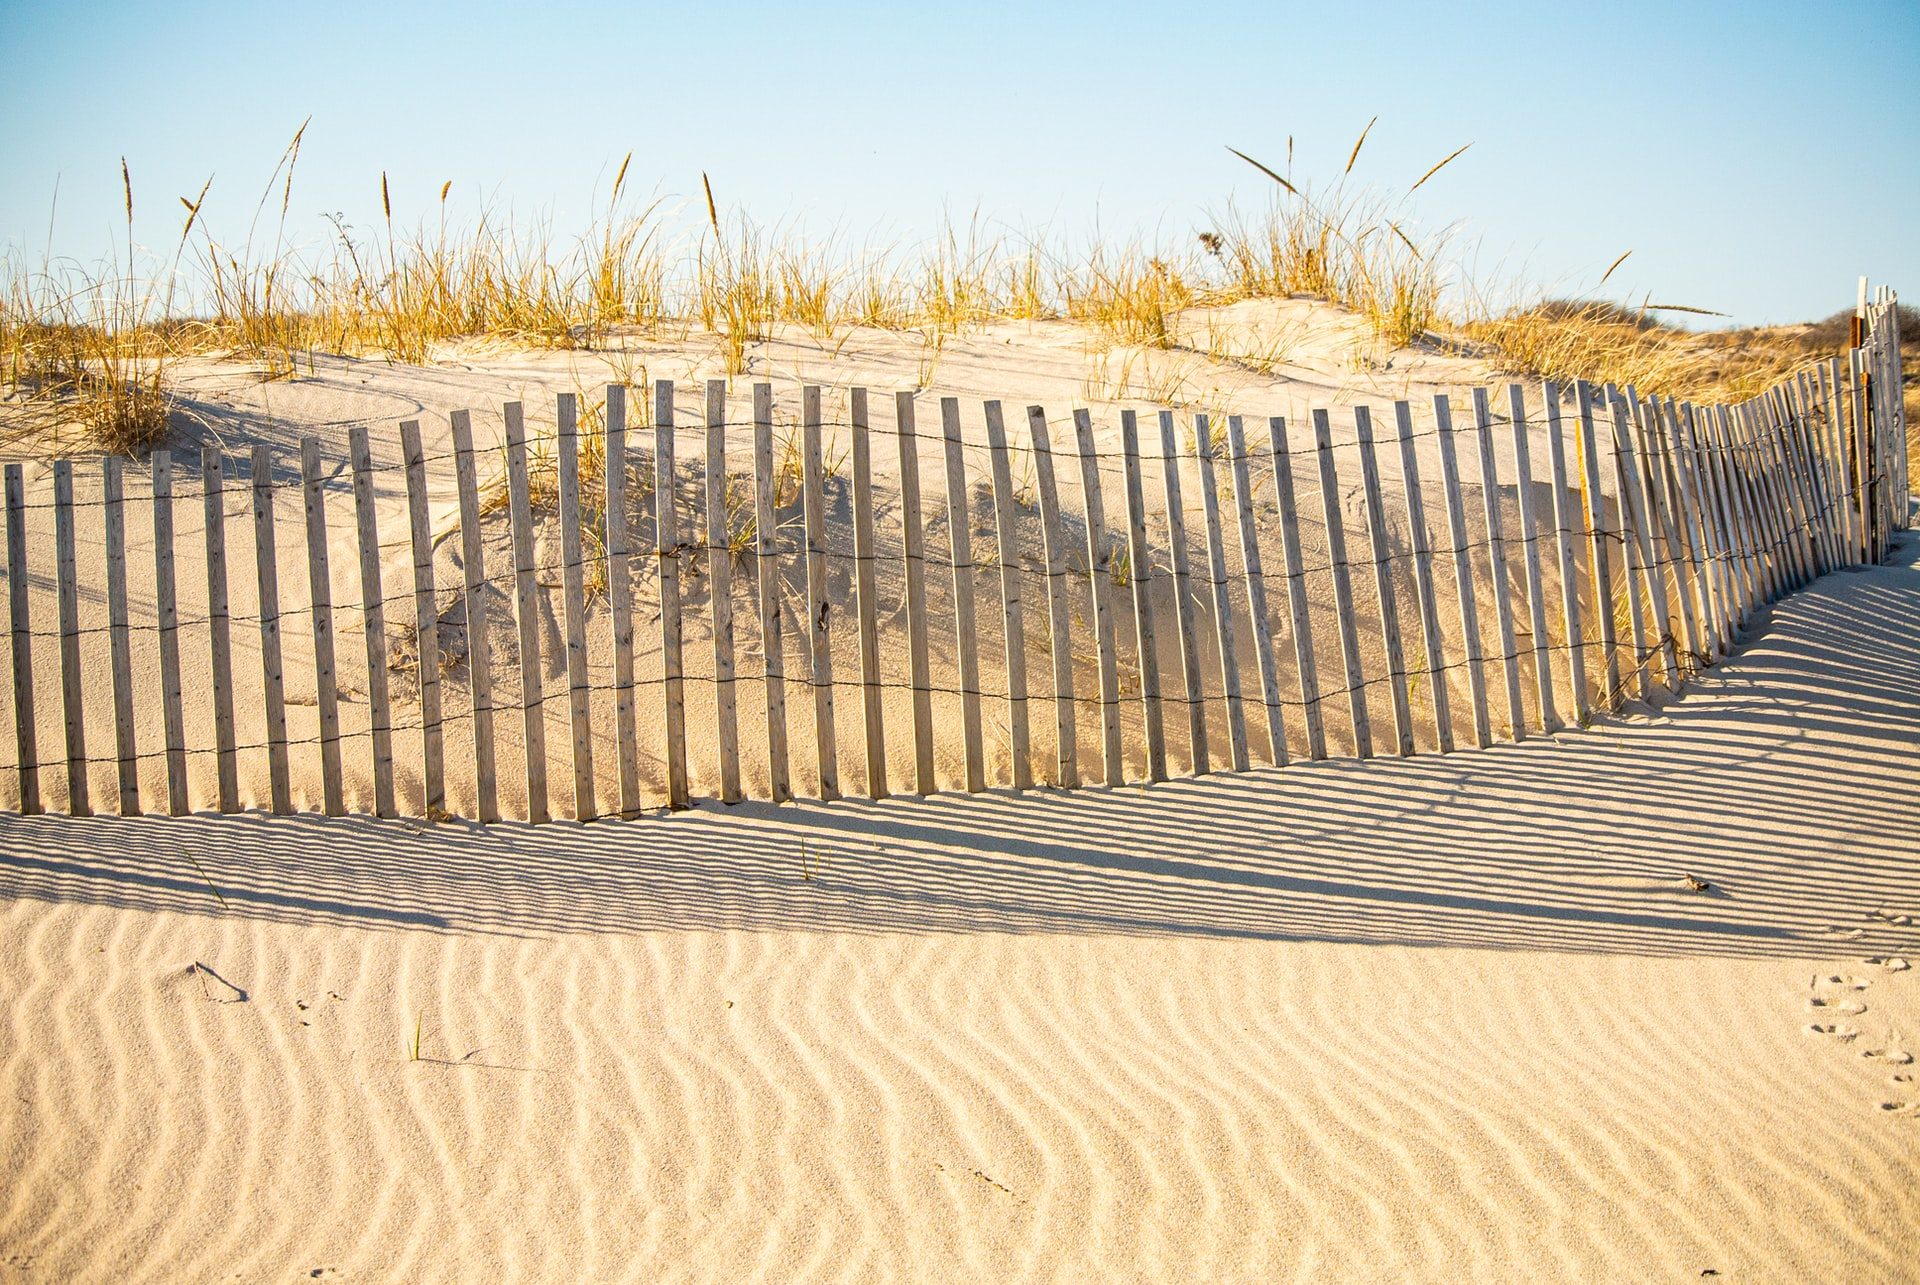 Sand on a beach in the hamptons